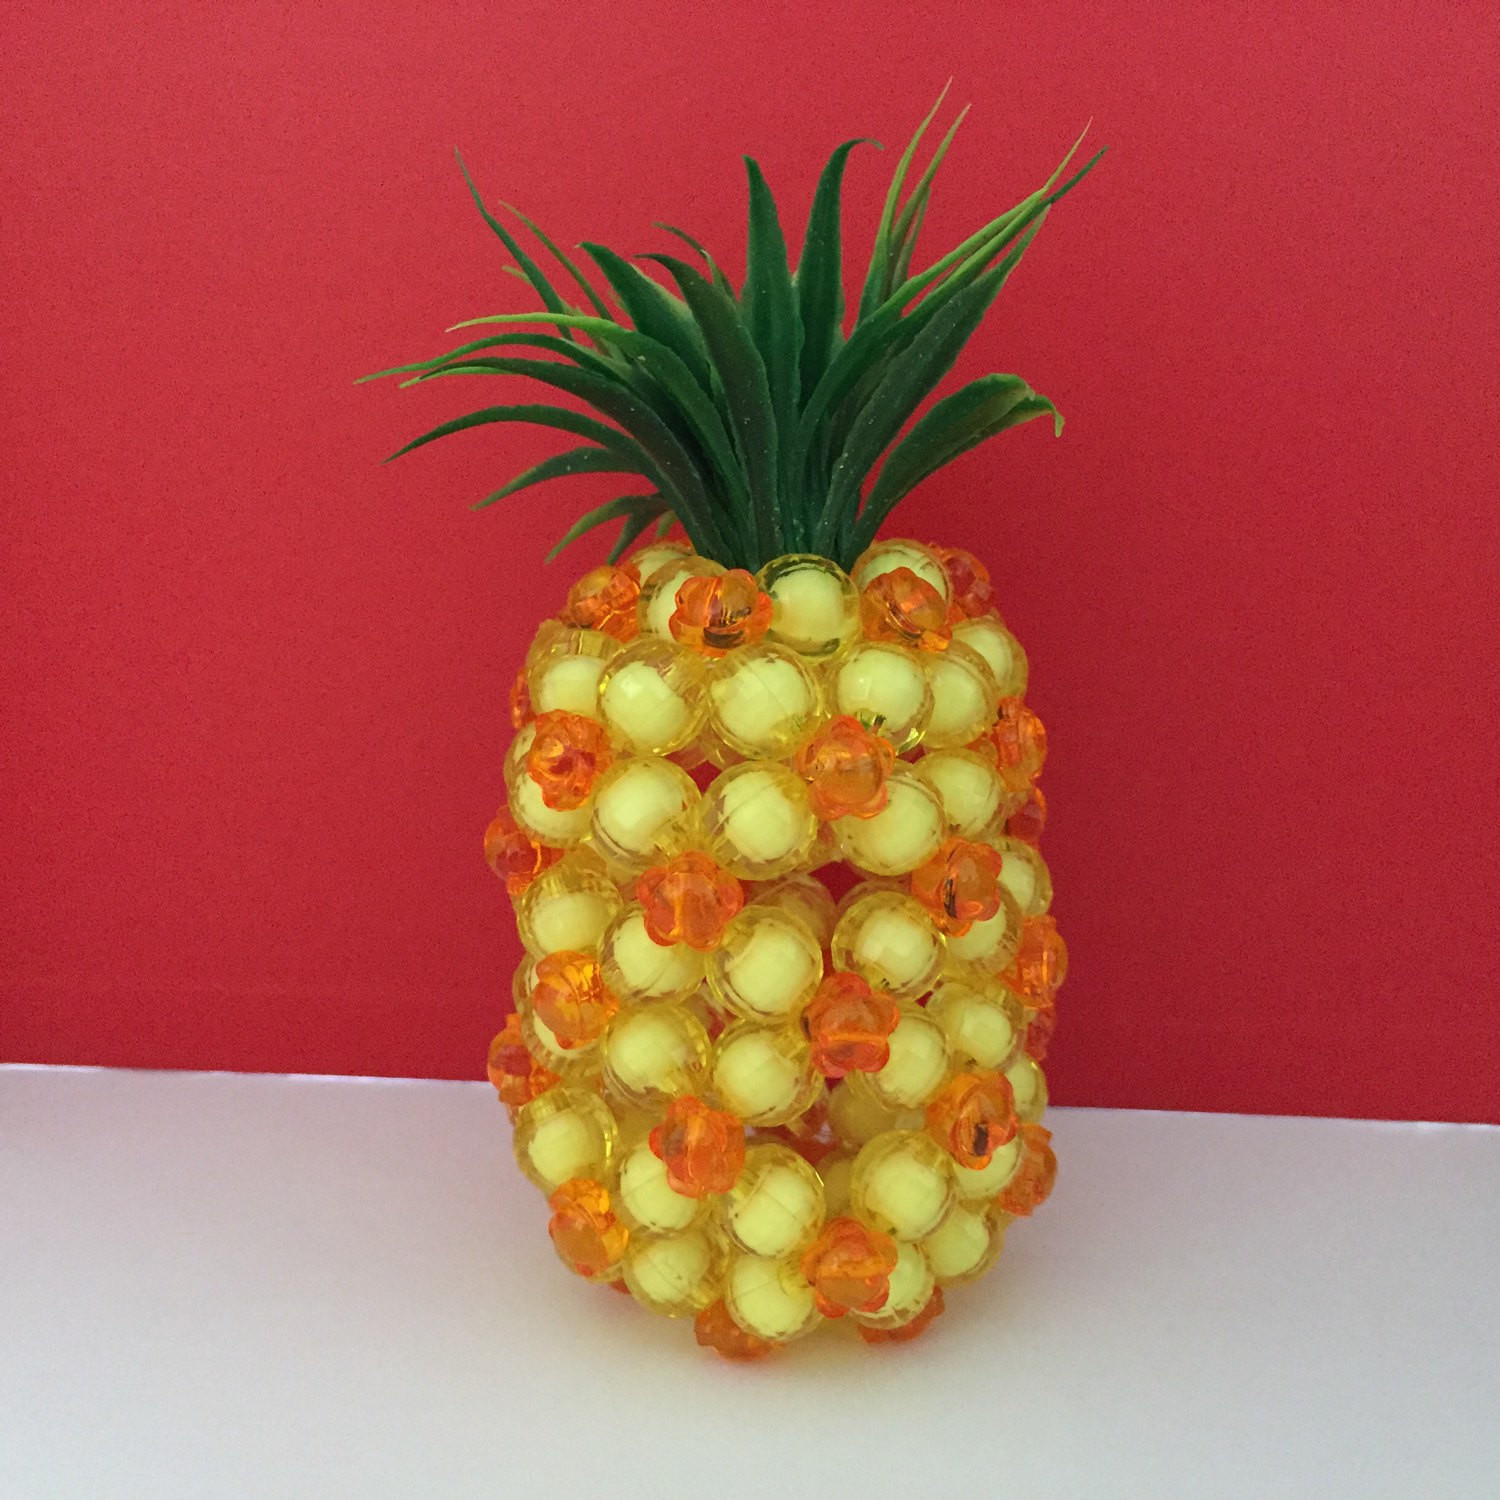 Pineapple Home Accessories Unique Pineapple Home Decor Of Contemporary 40 Models Pineapple Home Accessories